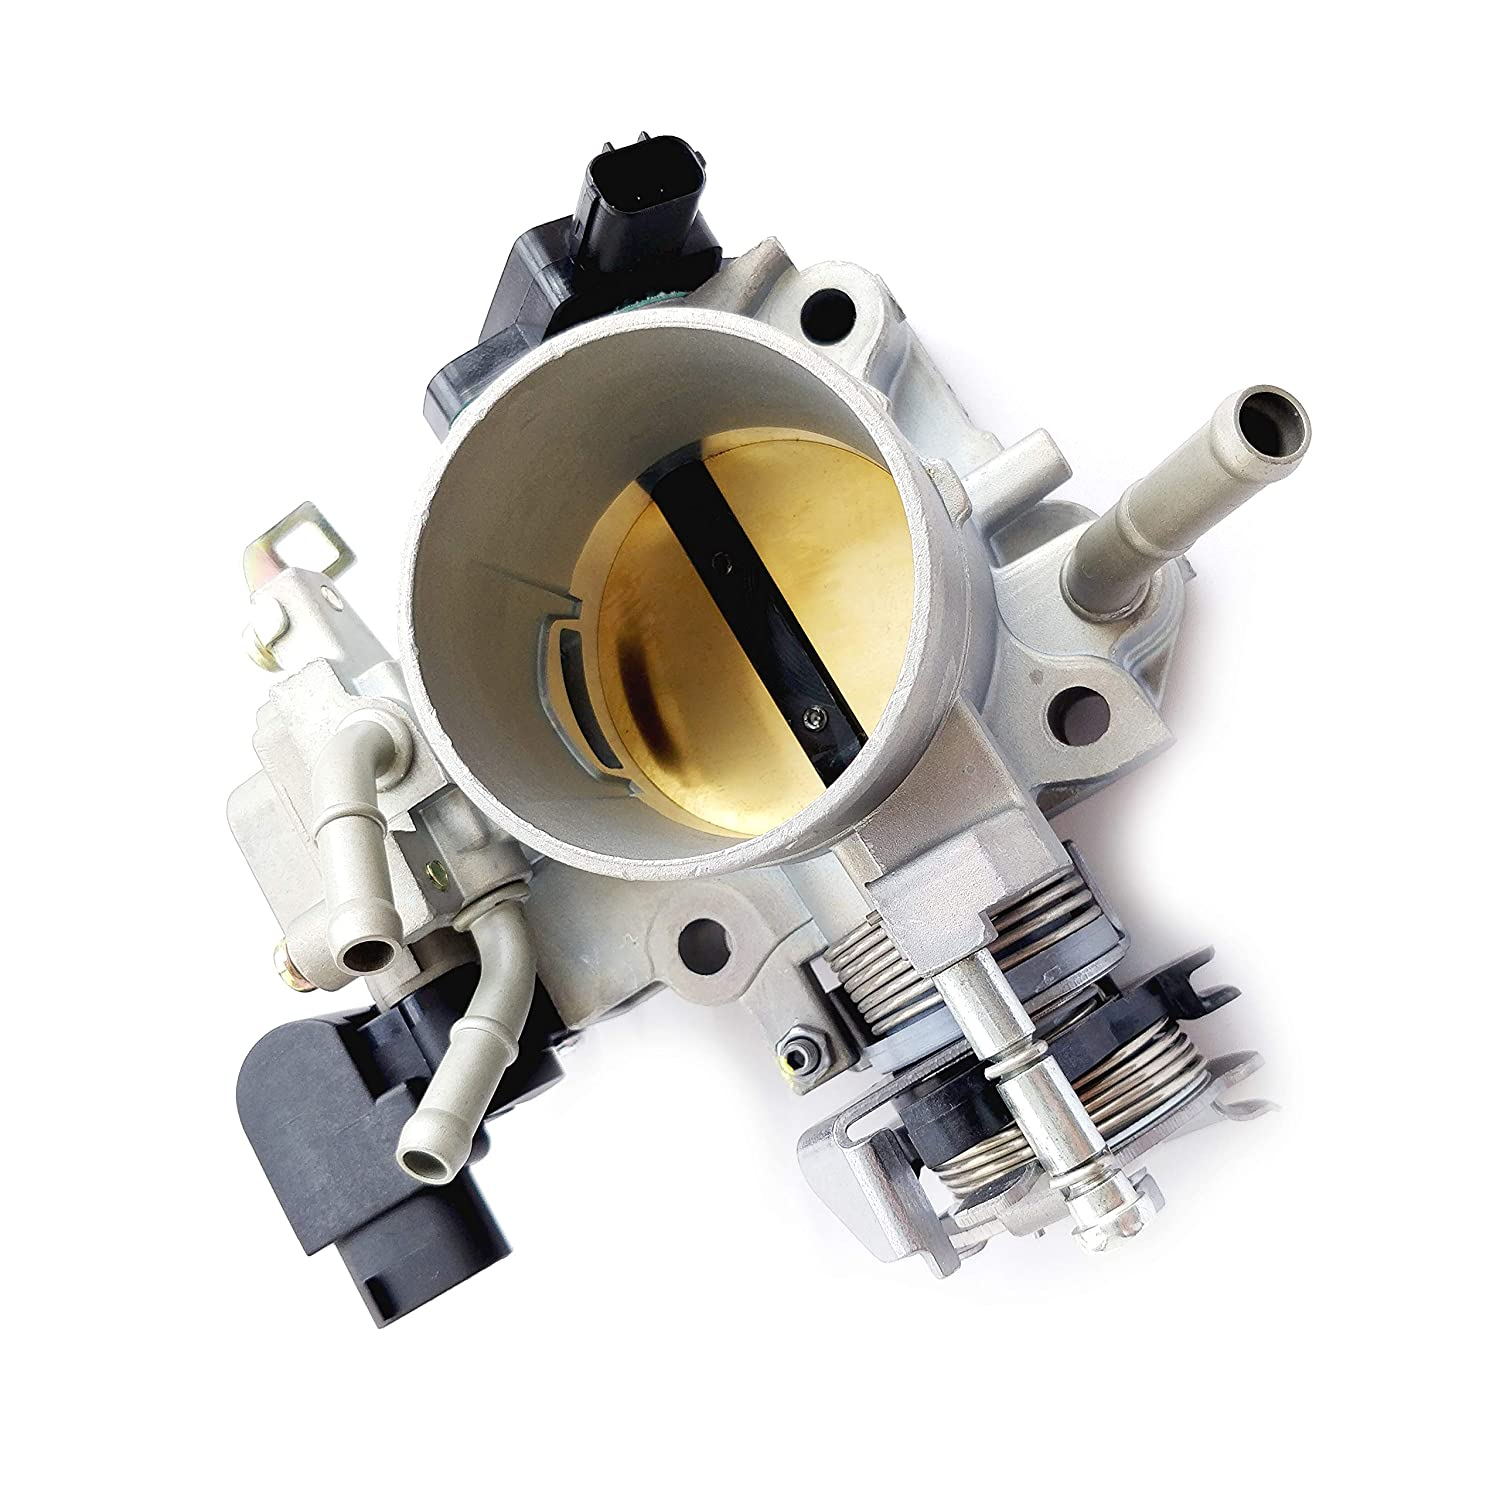 Amhousejoy Throttle Body for Chevrolet Chevy Express Silverado GMC Savana Sierra Yukon 12570800 217-2293